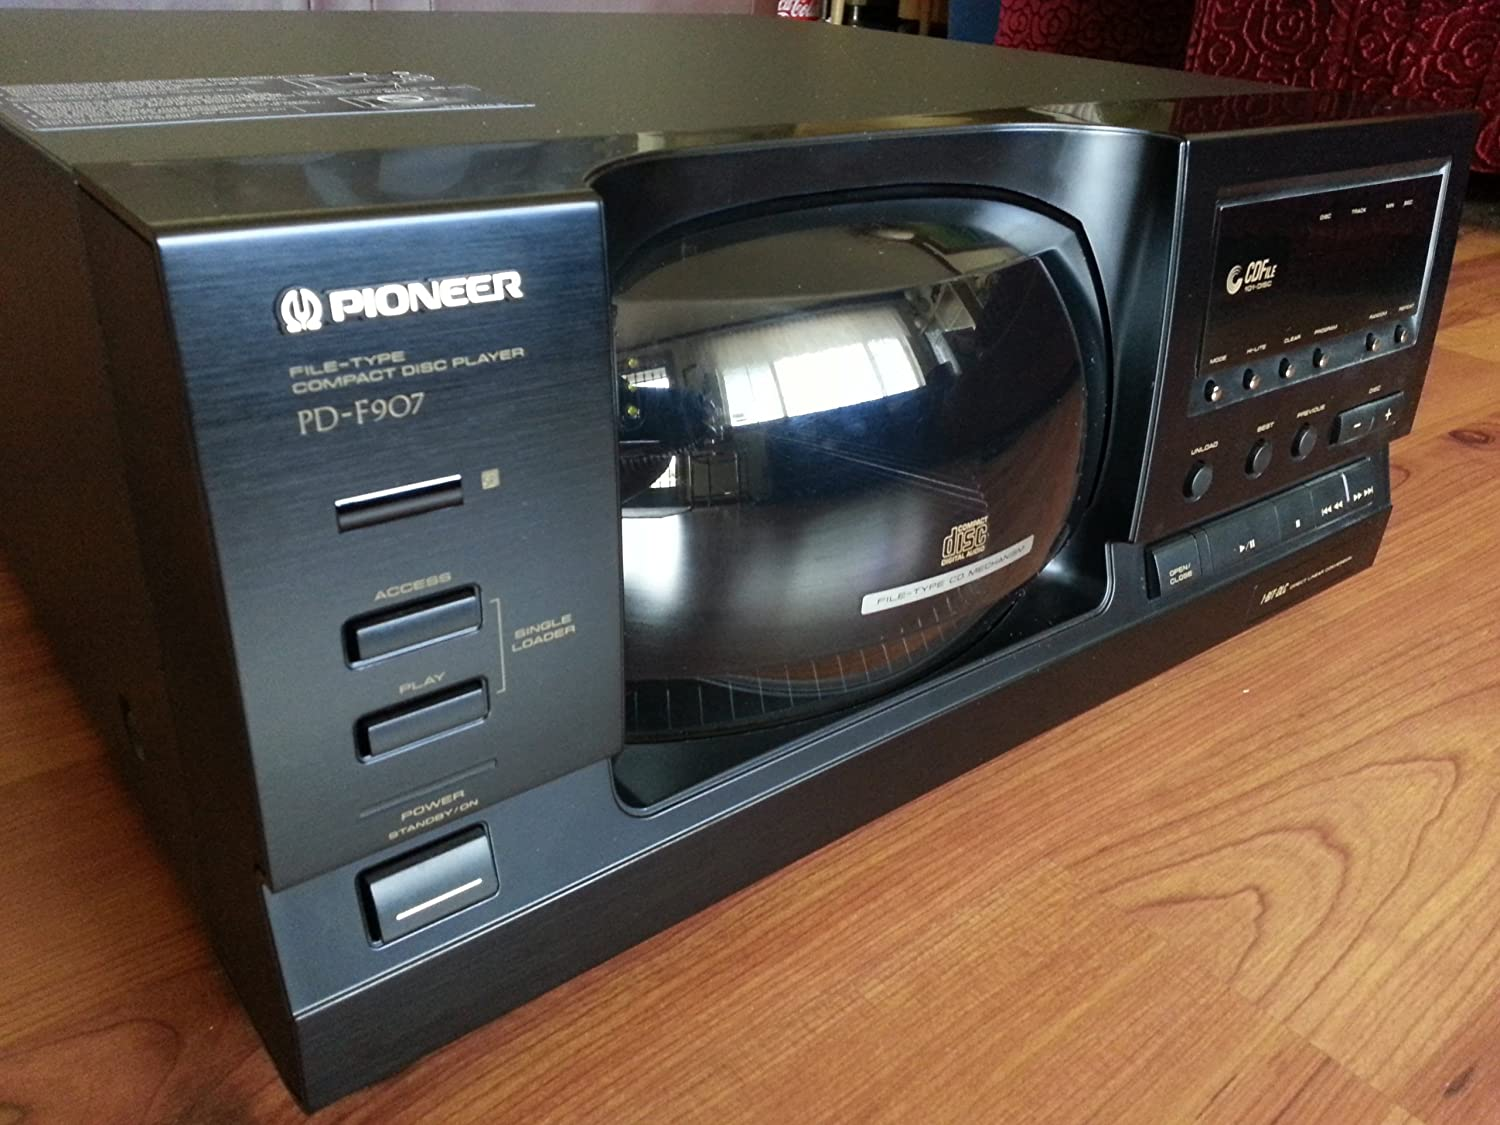 Amazon.com: Pioneer PD-F907 101 Compact Disc Player Black: Home Audio & Theater